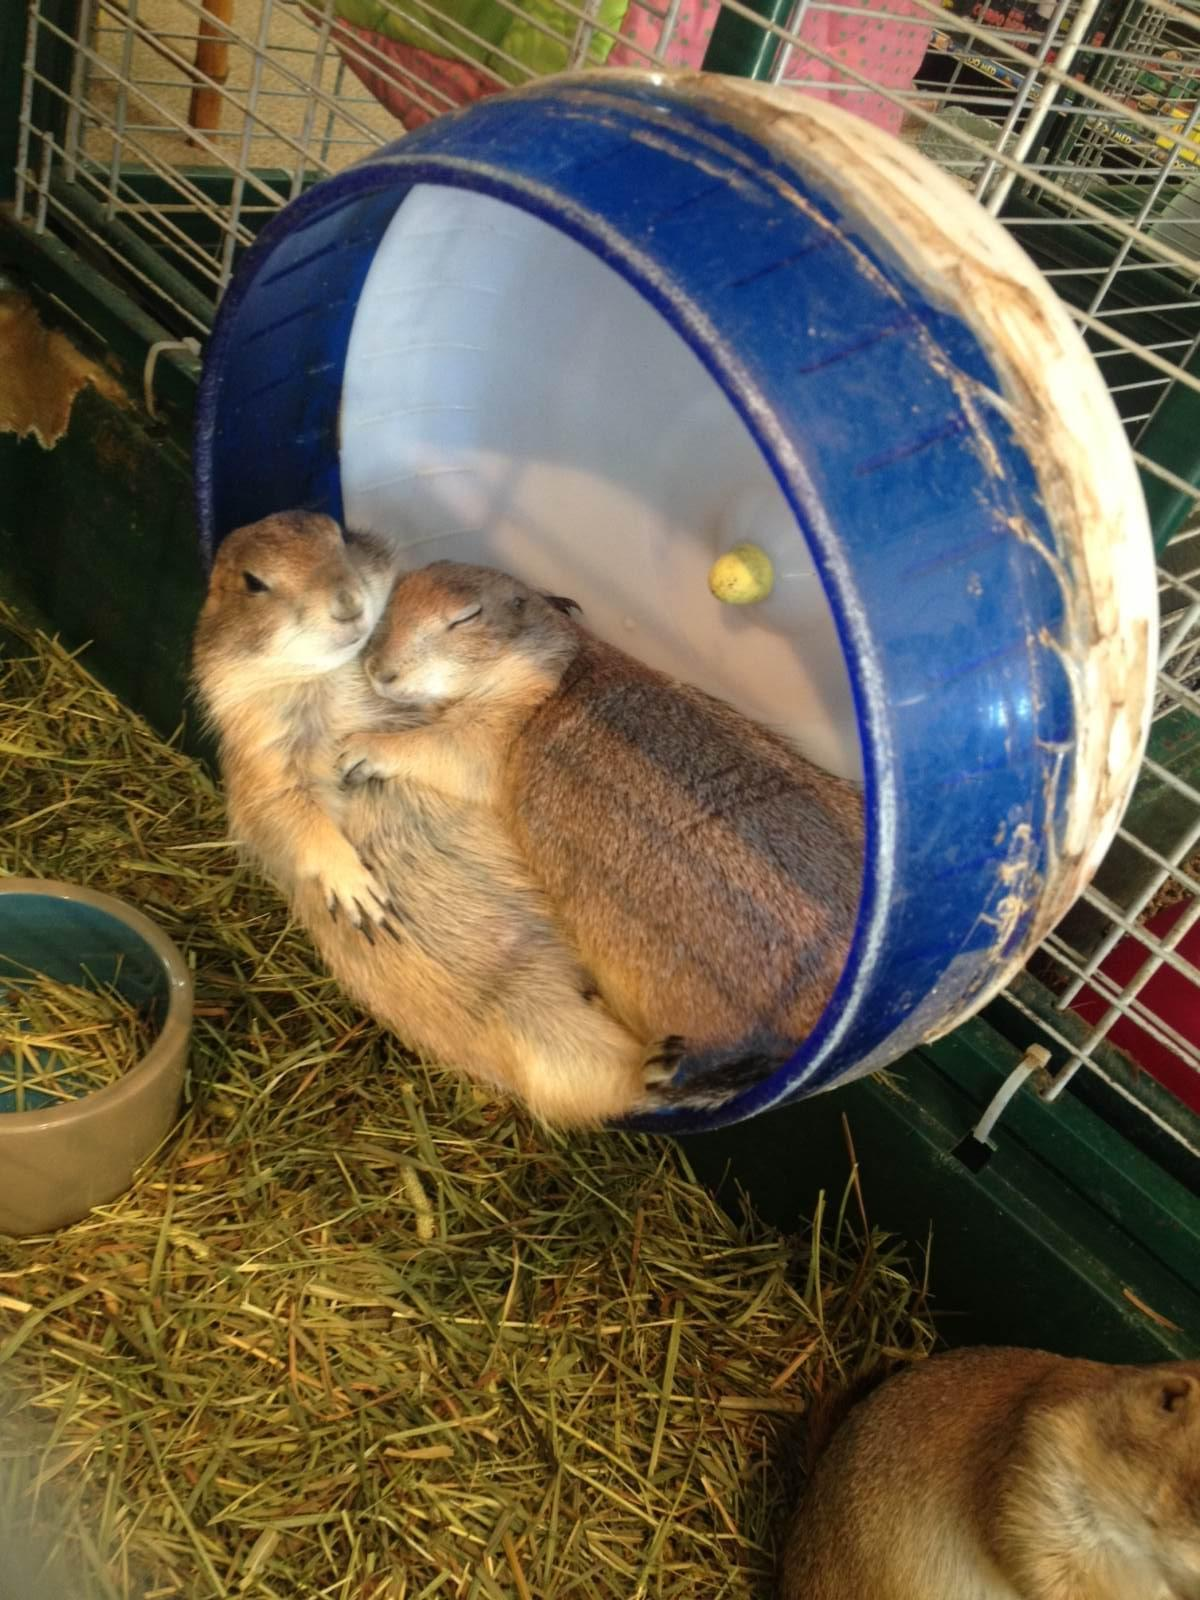 Just two prairie dogs having a cuddle session http://t.co/oDvXESoKO5